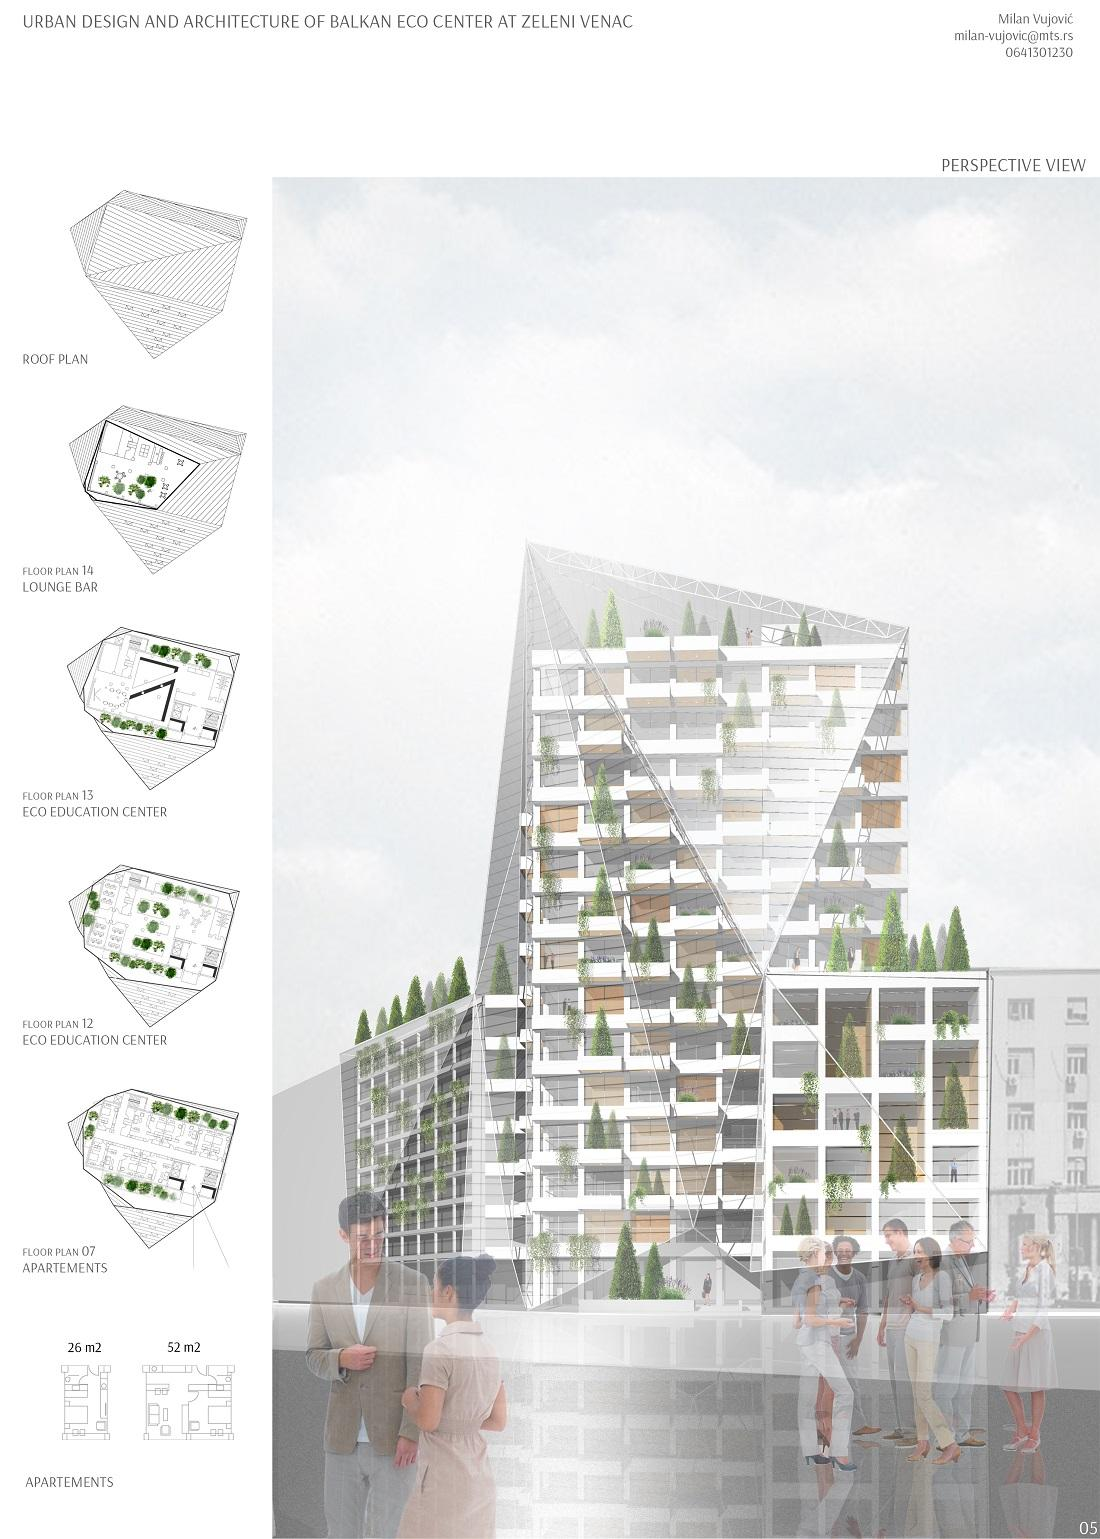 9th-finalist-architectural-competition.jpg